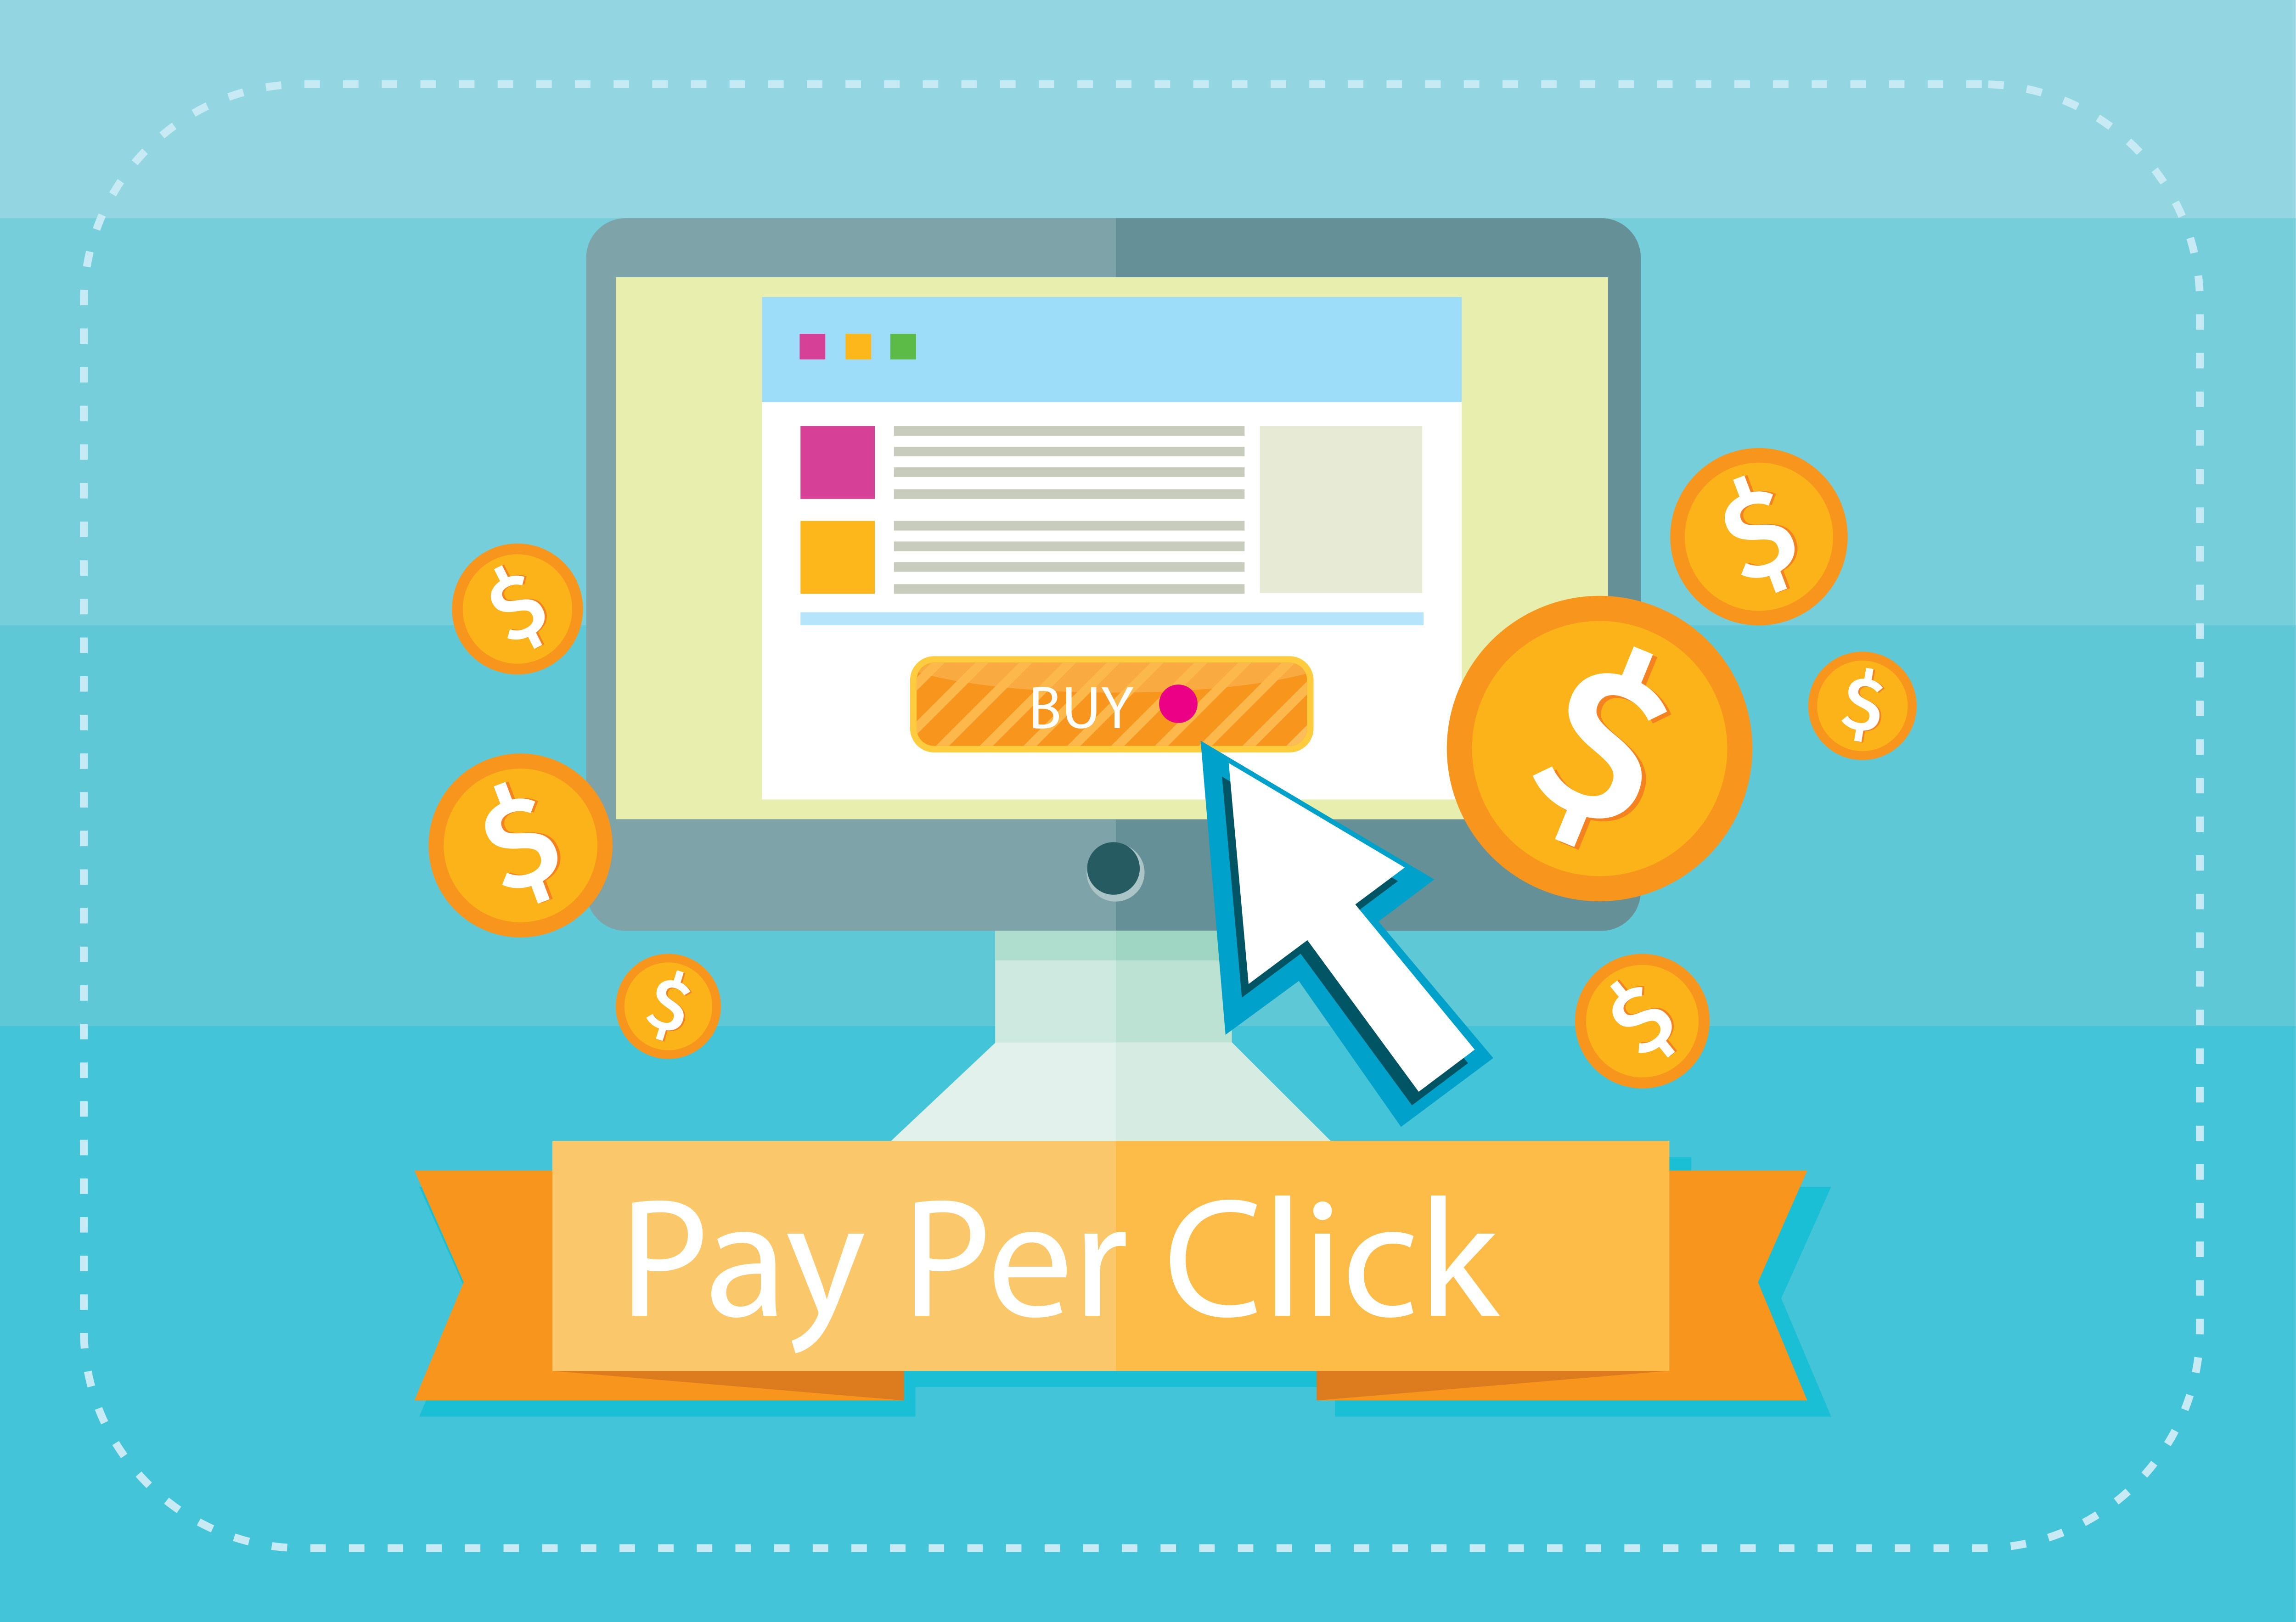 Increasing conversions using PPC advertising and live chat prompts.